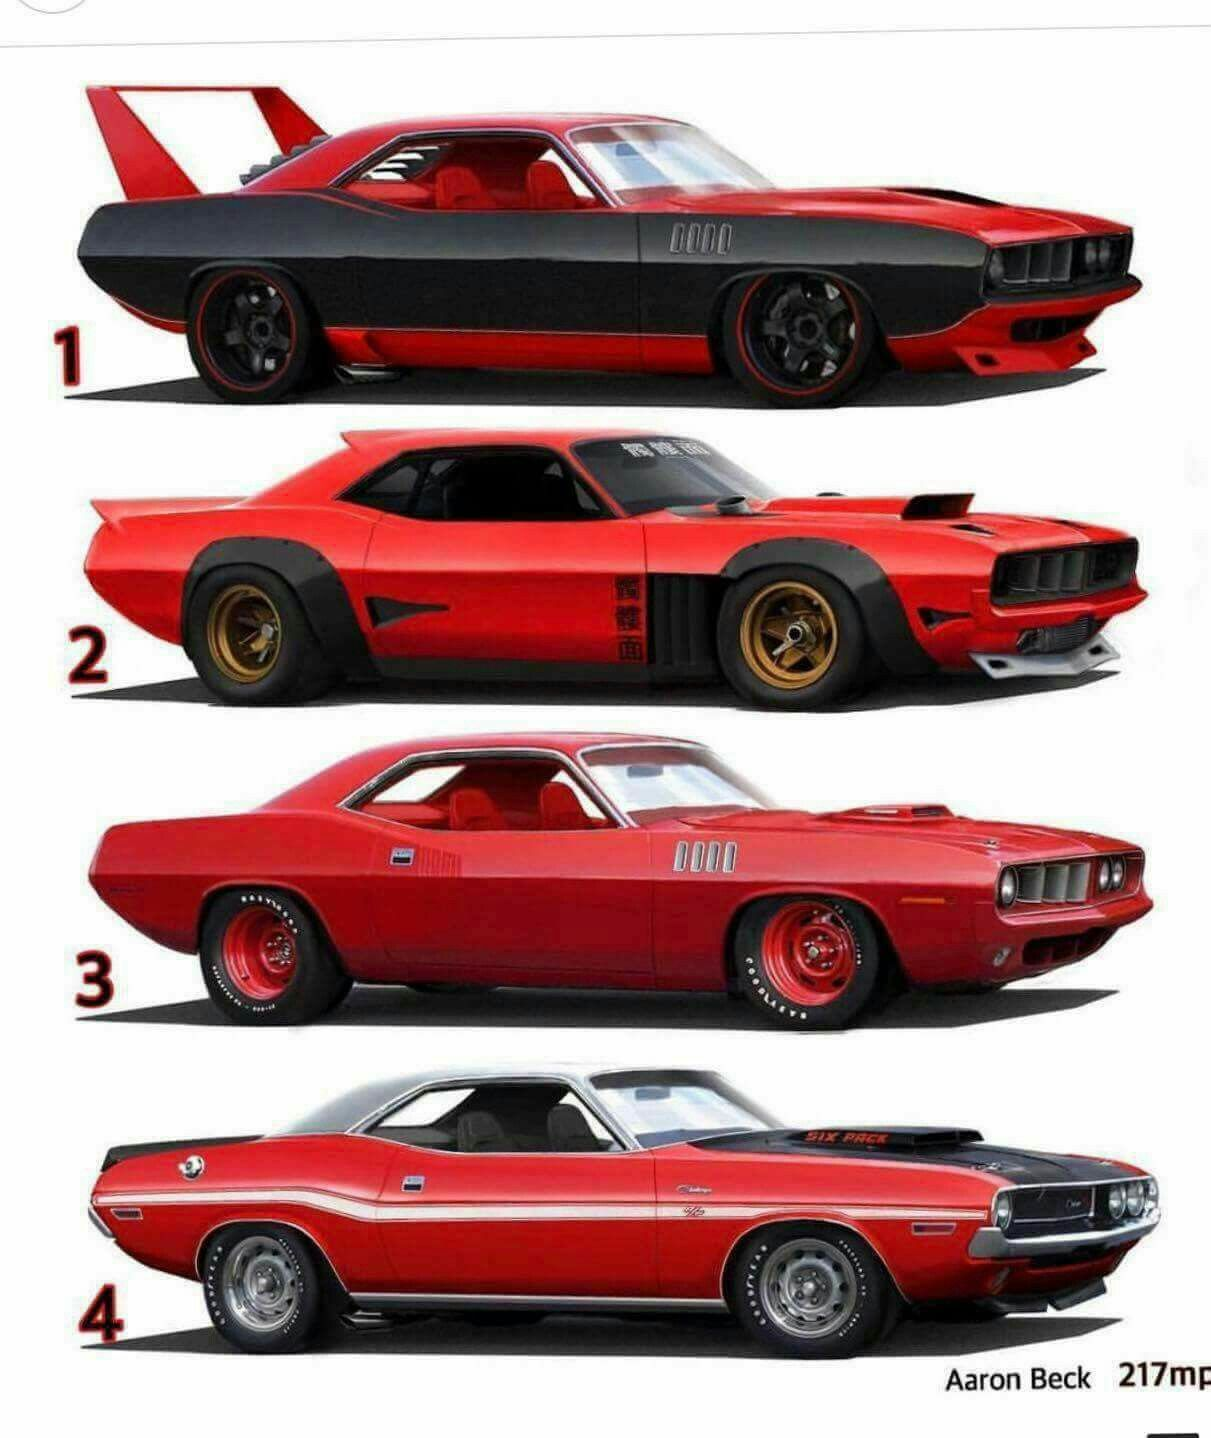 Pin By Carter Johnson On Mopar Cars Muscle Cars Cars Motorcycles